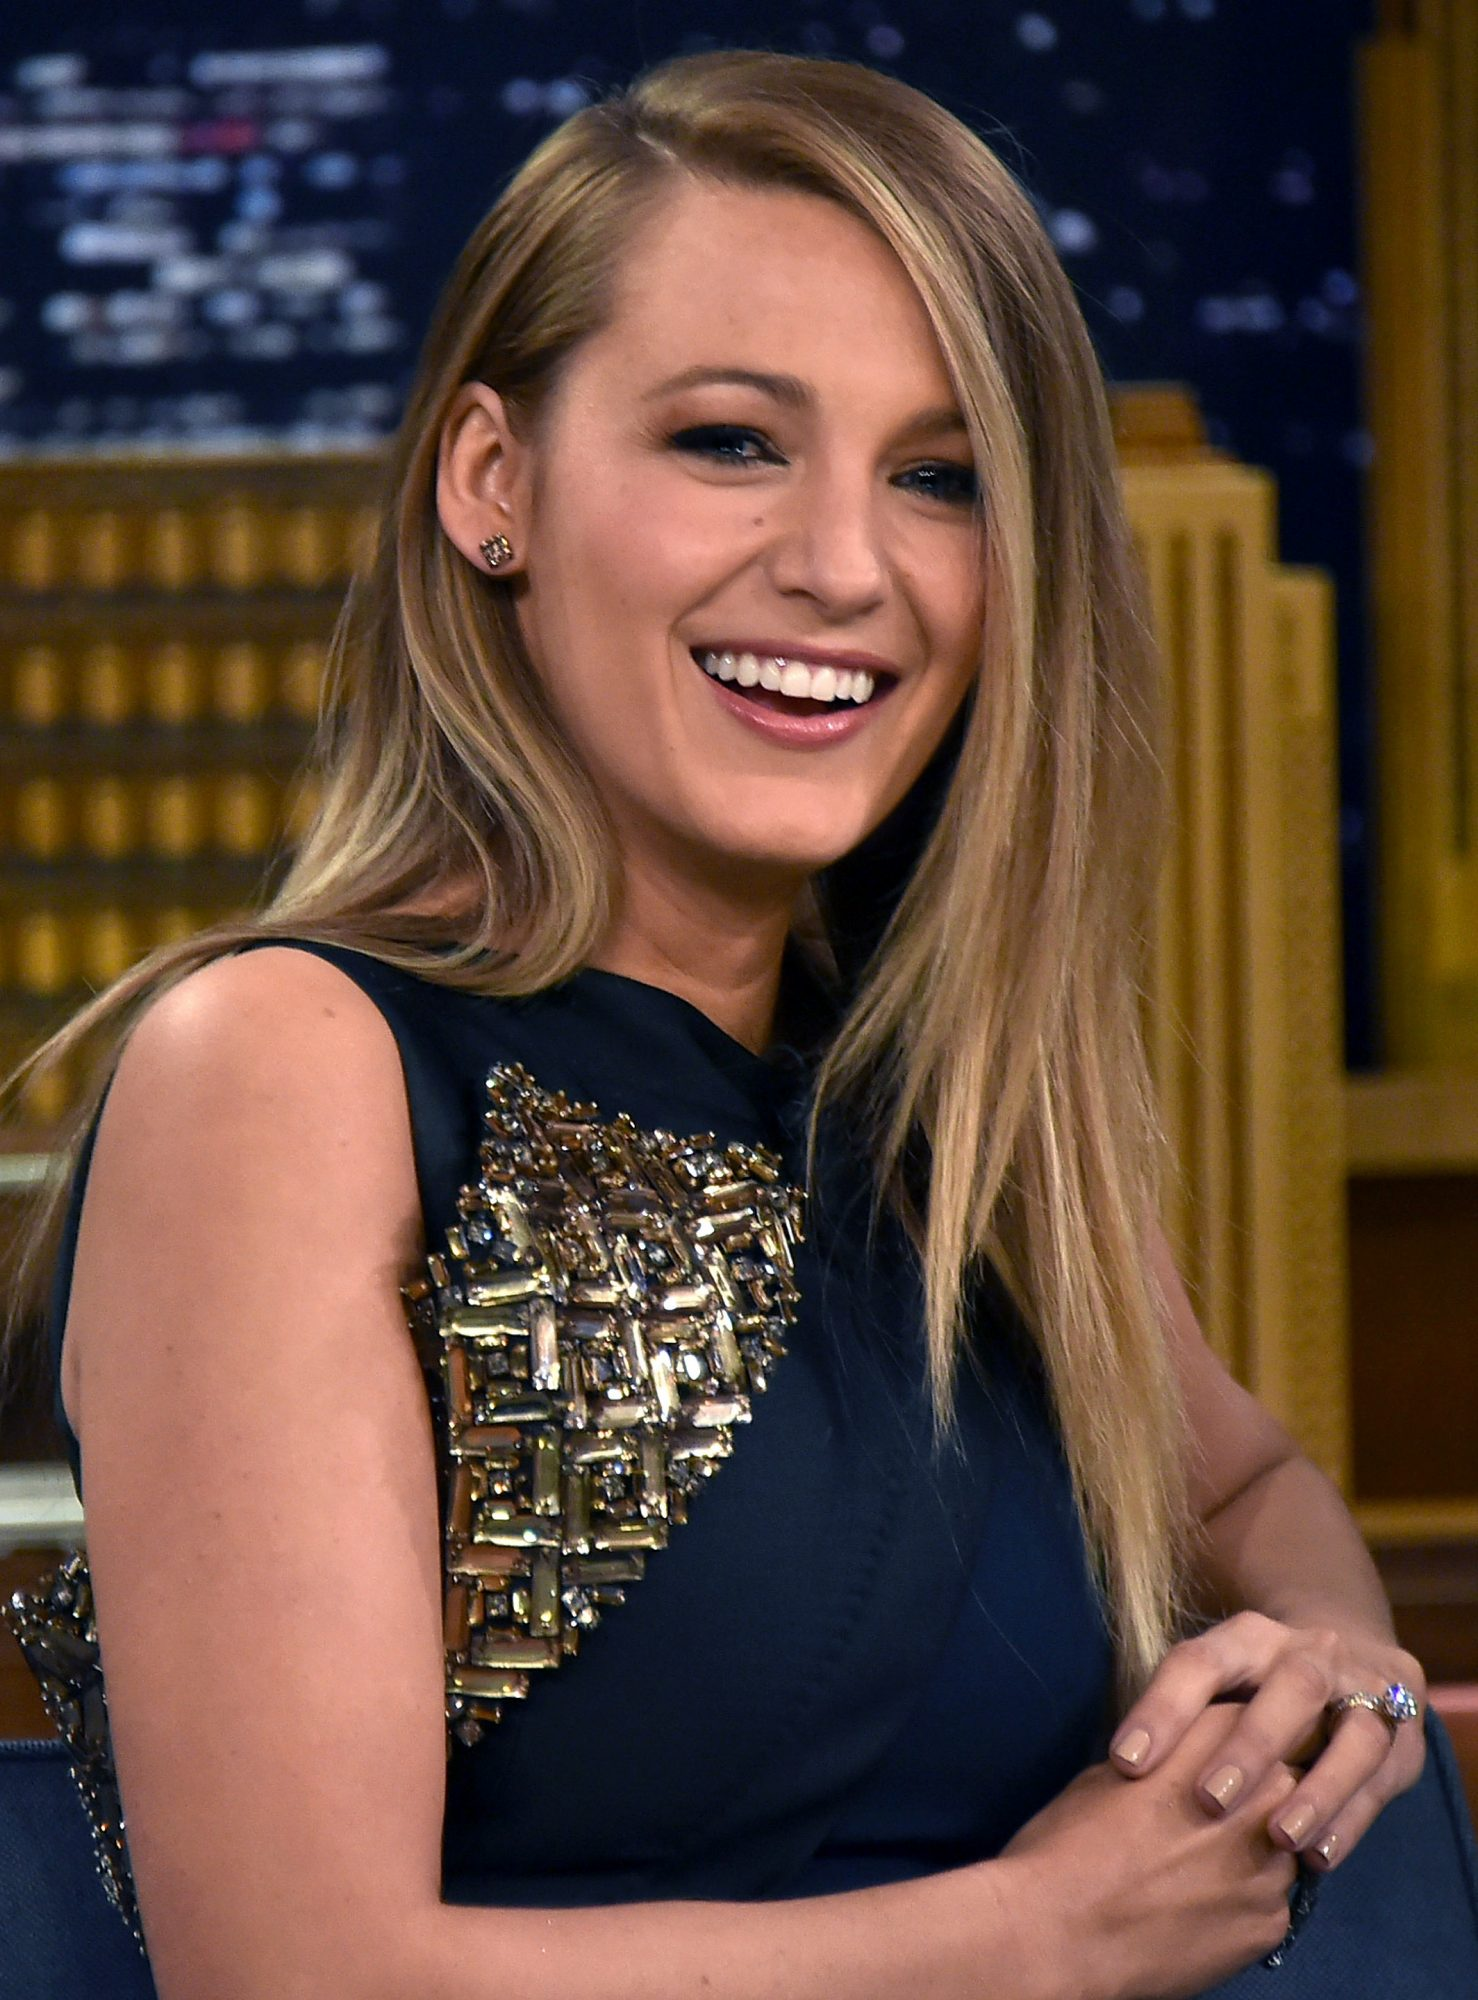 Blake Lively Shares an Adorable Baby Photo of Herself and Her <em>Teen Witch</em> Sister